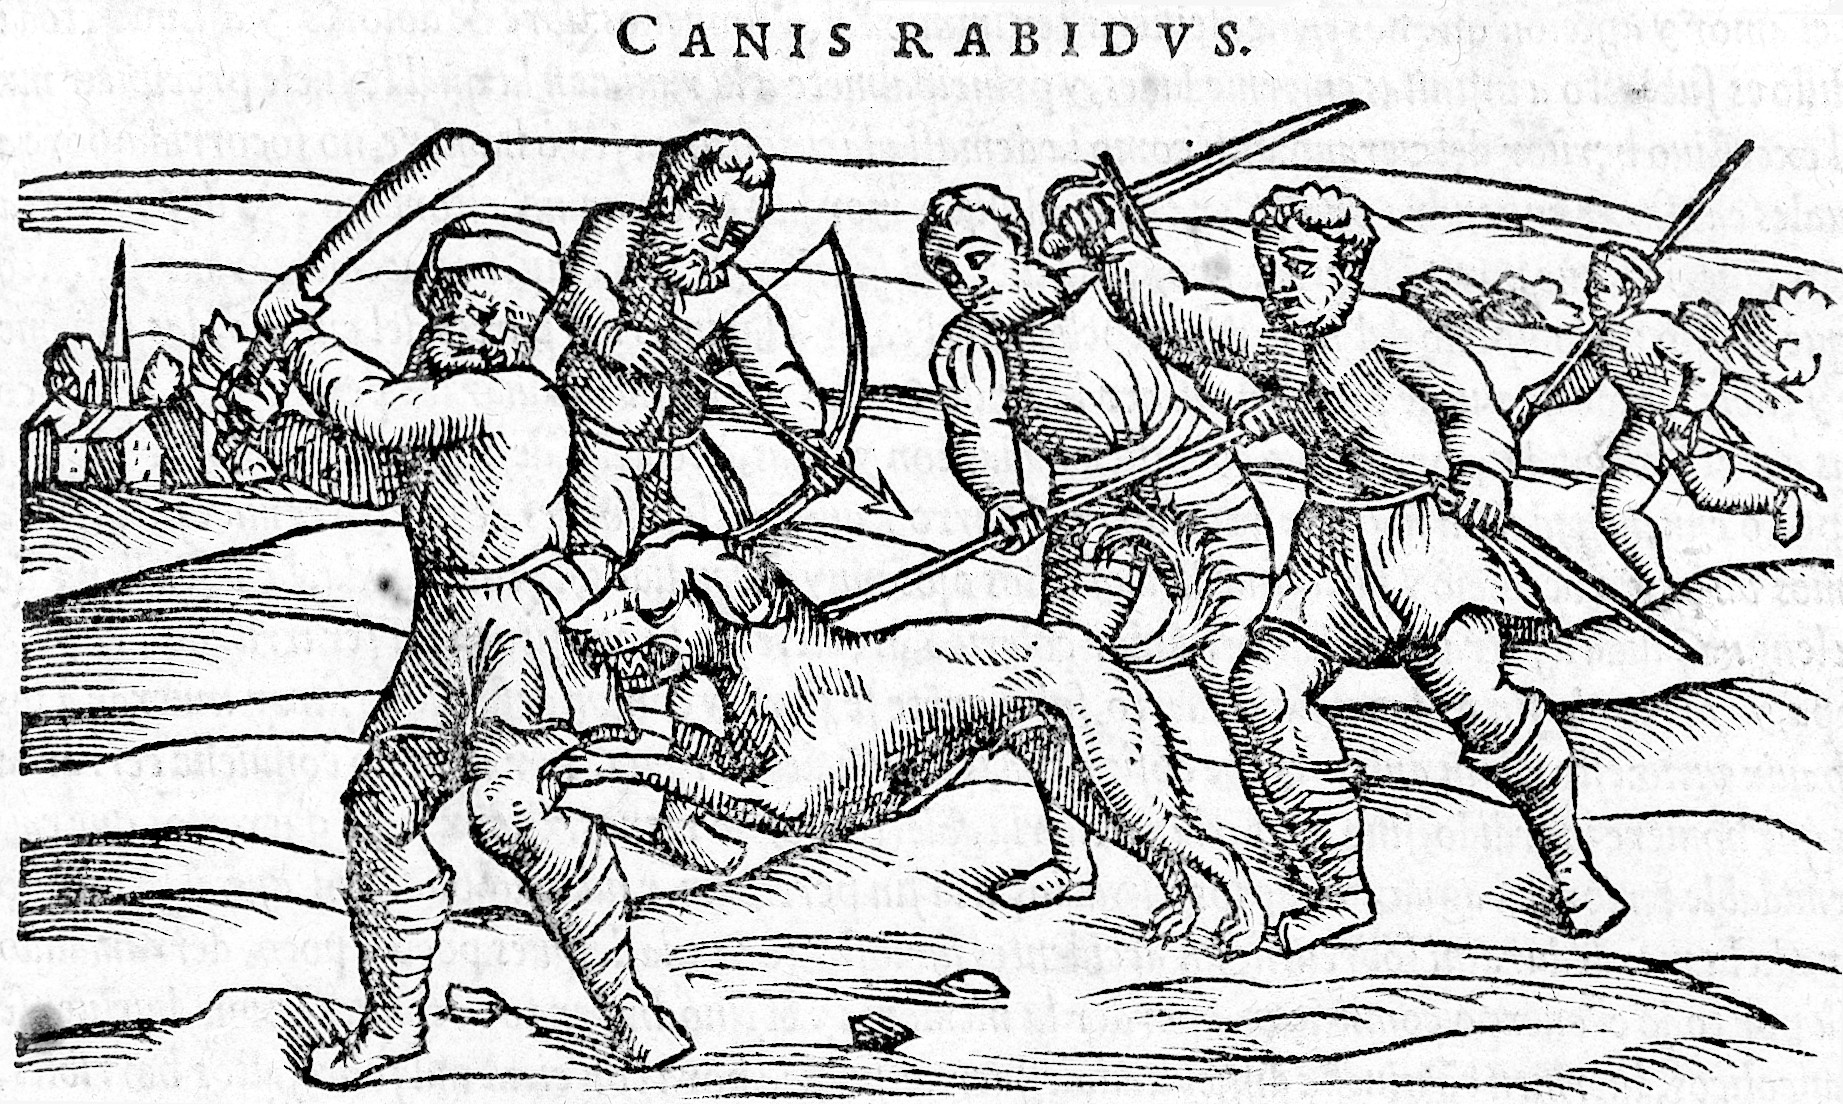 L0009996 Rabies: Slaying a mad dog